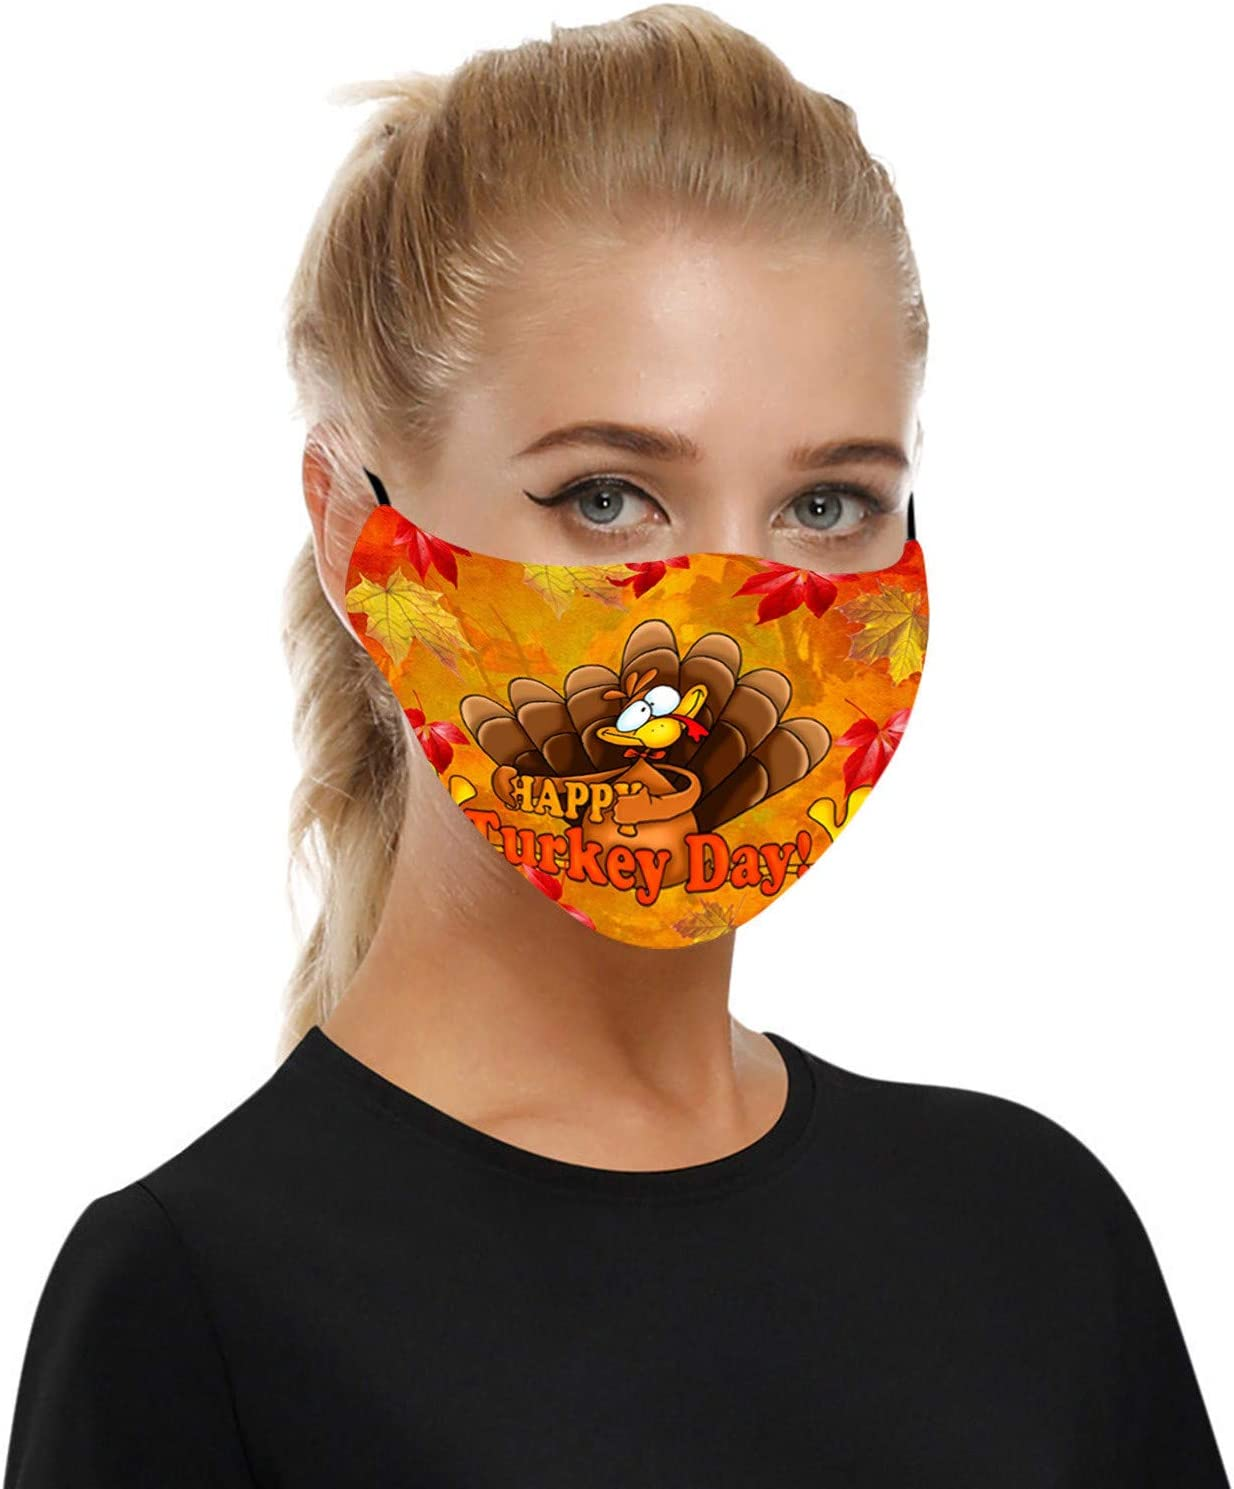 5PCS+10PCS 2021 Happy New Years Printed Adults Black Face_Mask Washable Reusable Men Women Adjustable Face Covering Breathable Soft Mouth Bandanas Skin Friendly